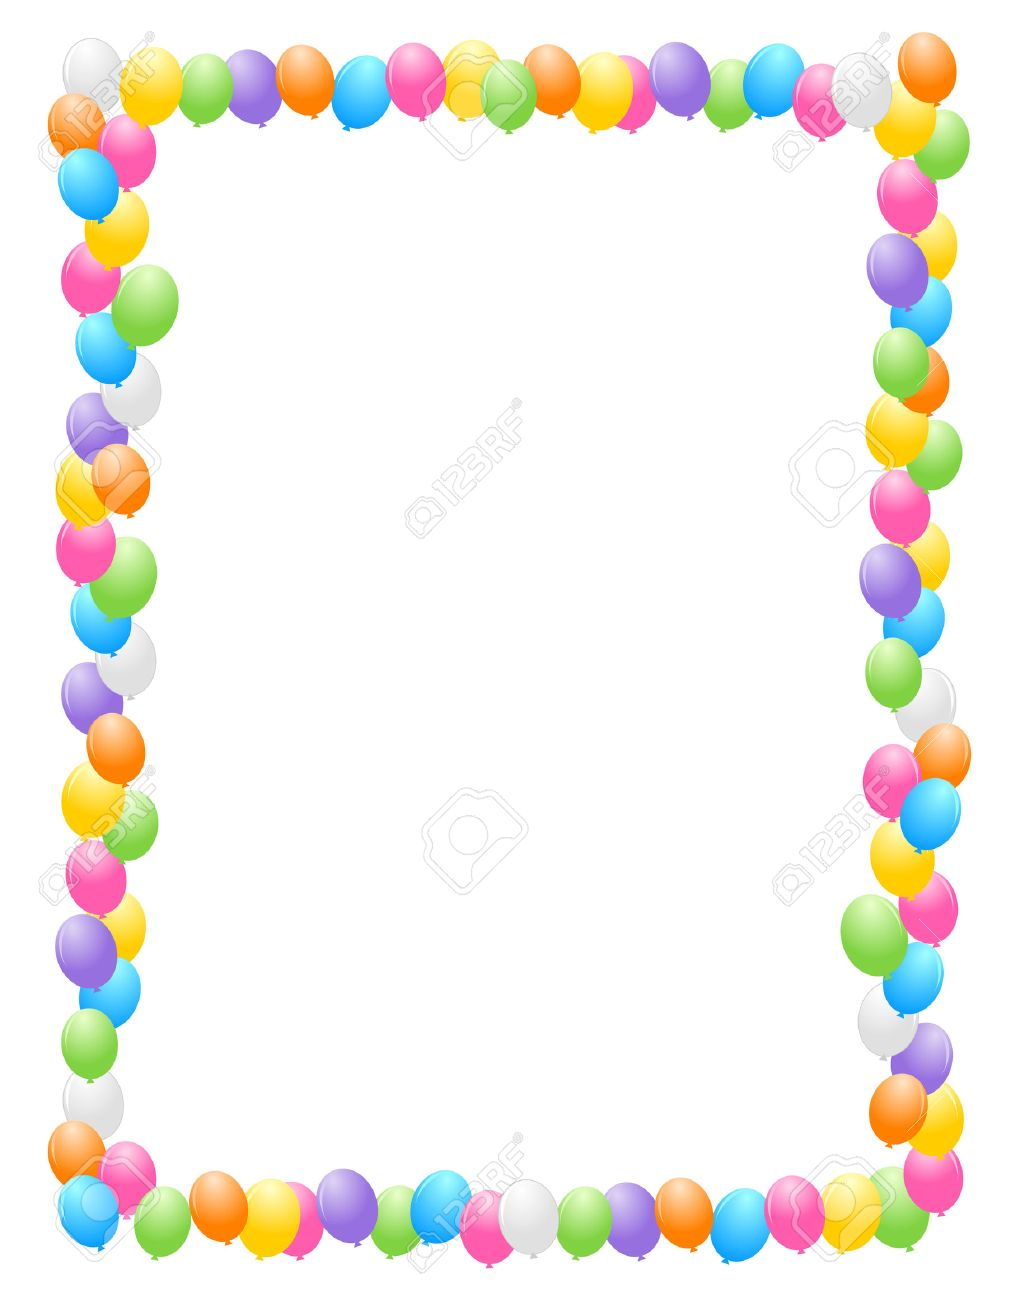 birthday balloon border ; 38545900-colorful-balloons-border-frame-illustration-for-birthday-cards-and-party-backgrounds-Stock-Photo